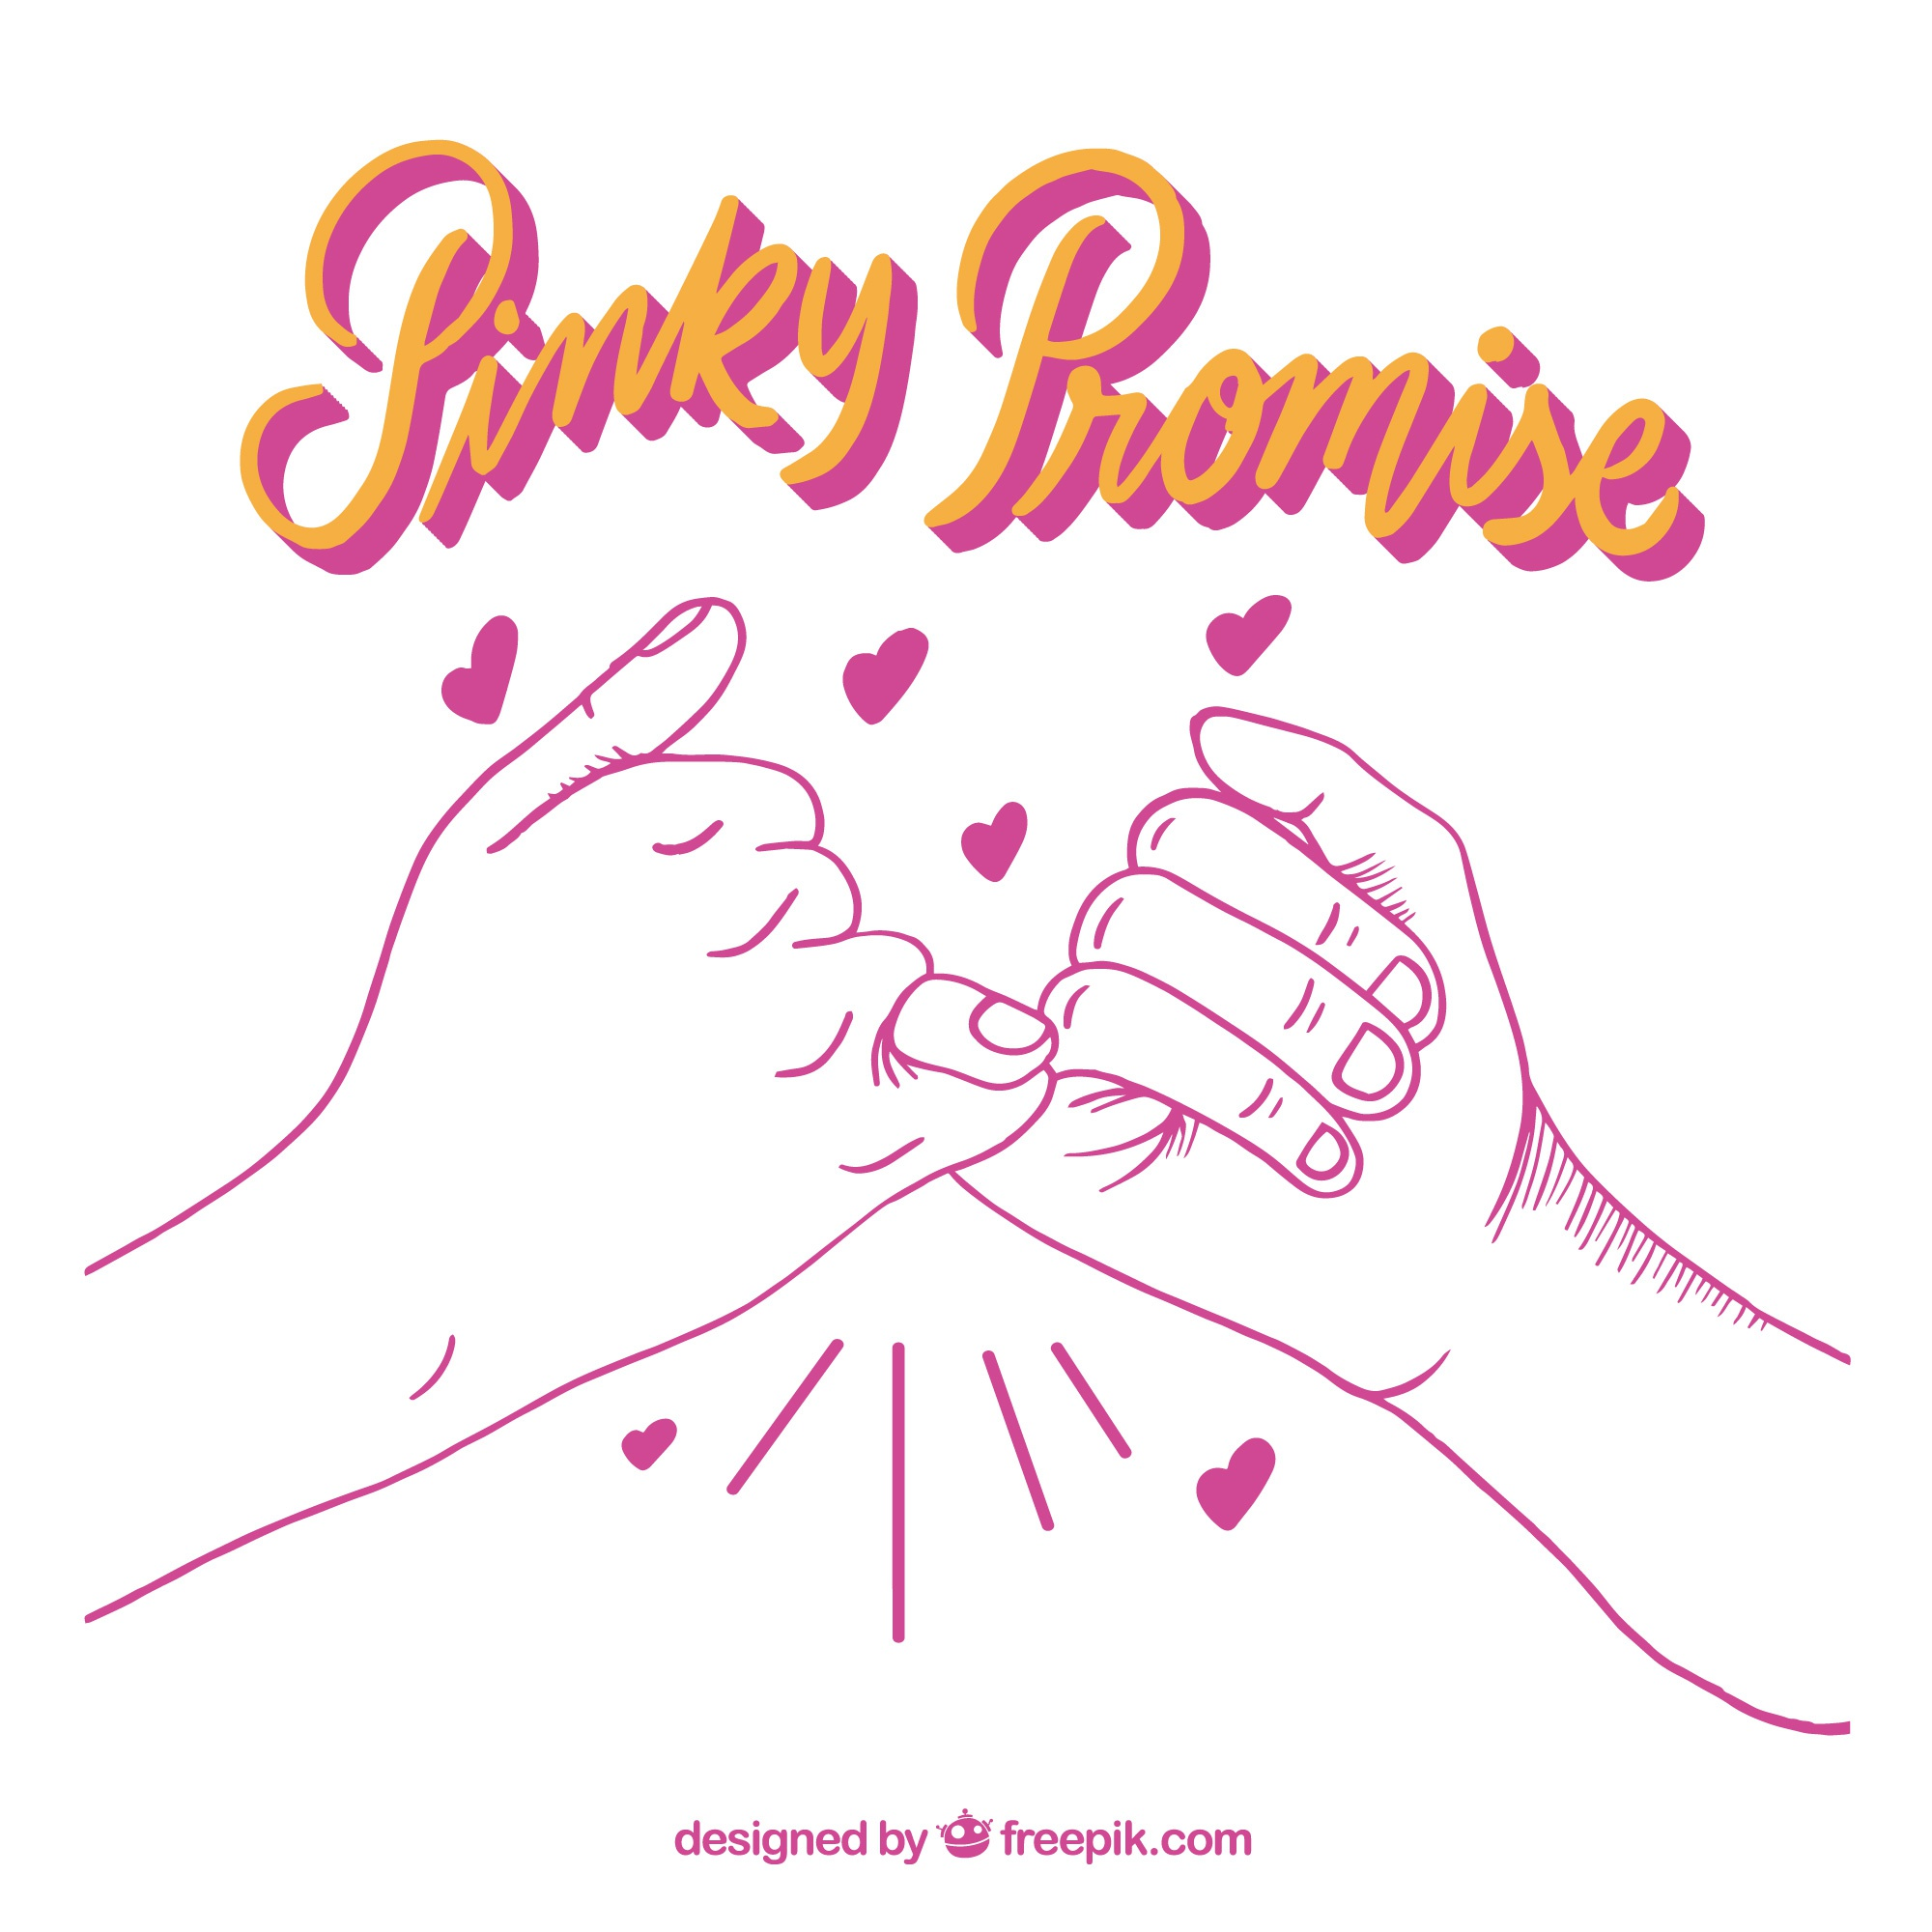 Hand drawn pinky promise concept